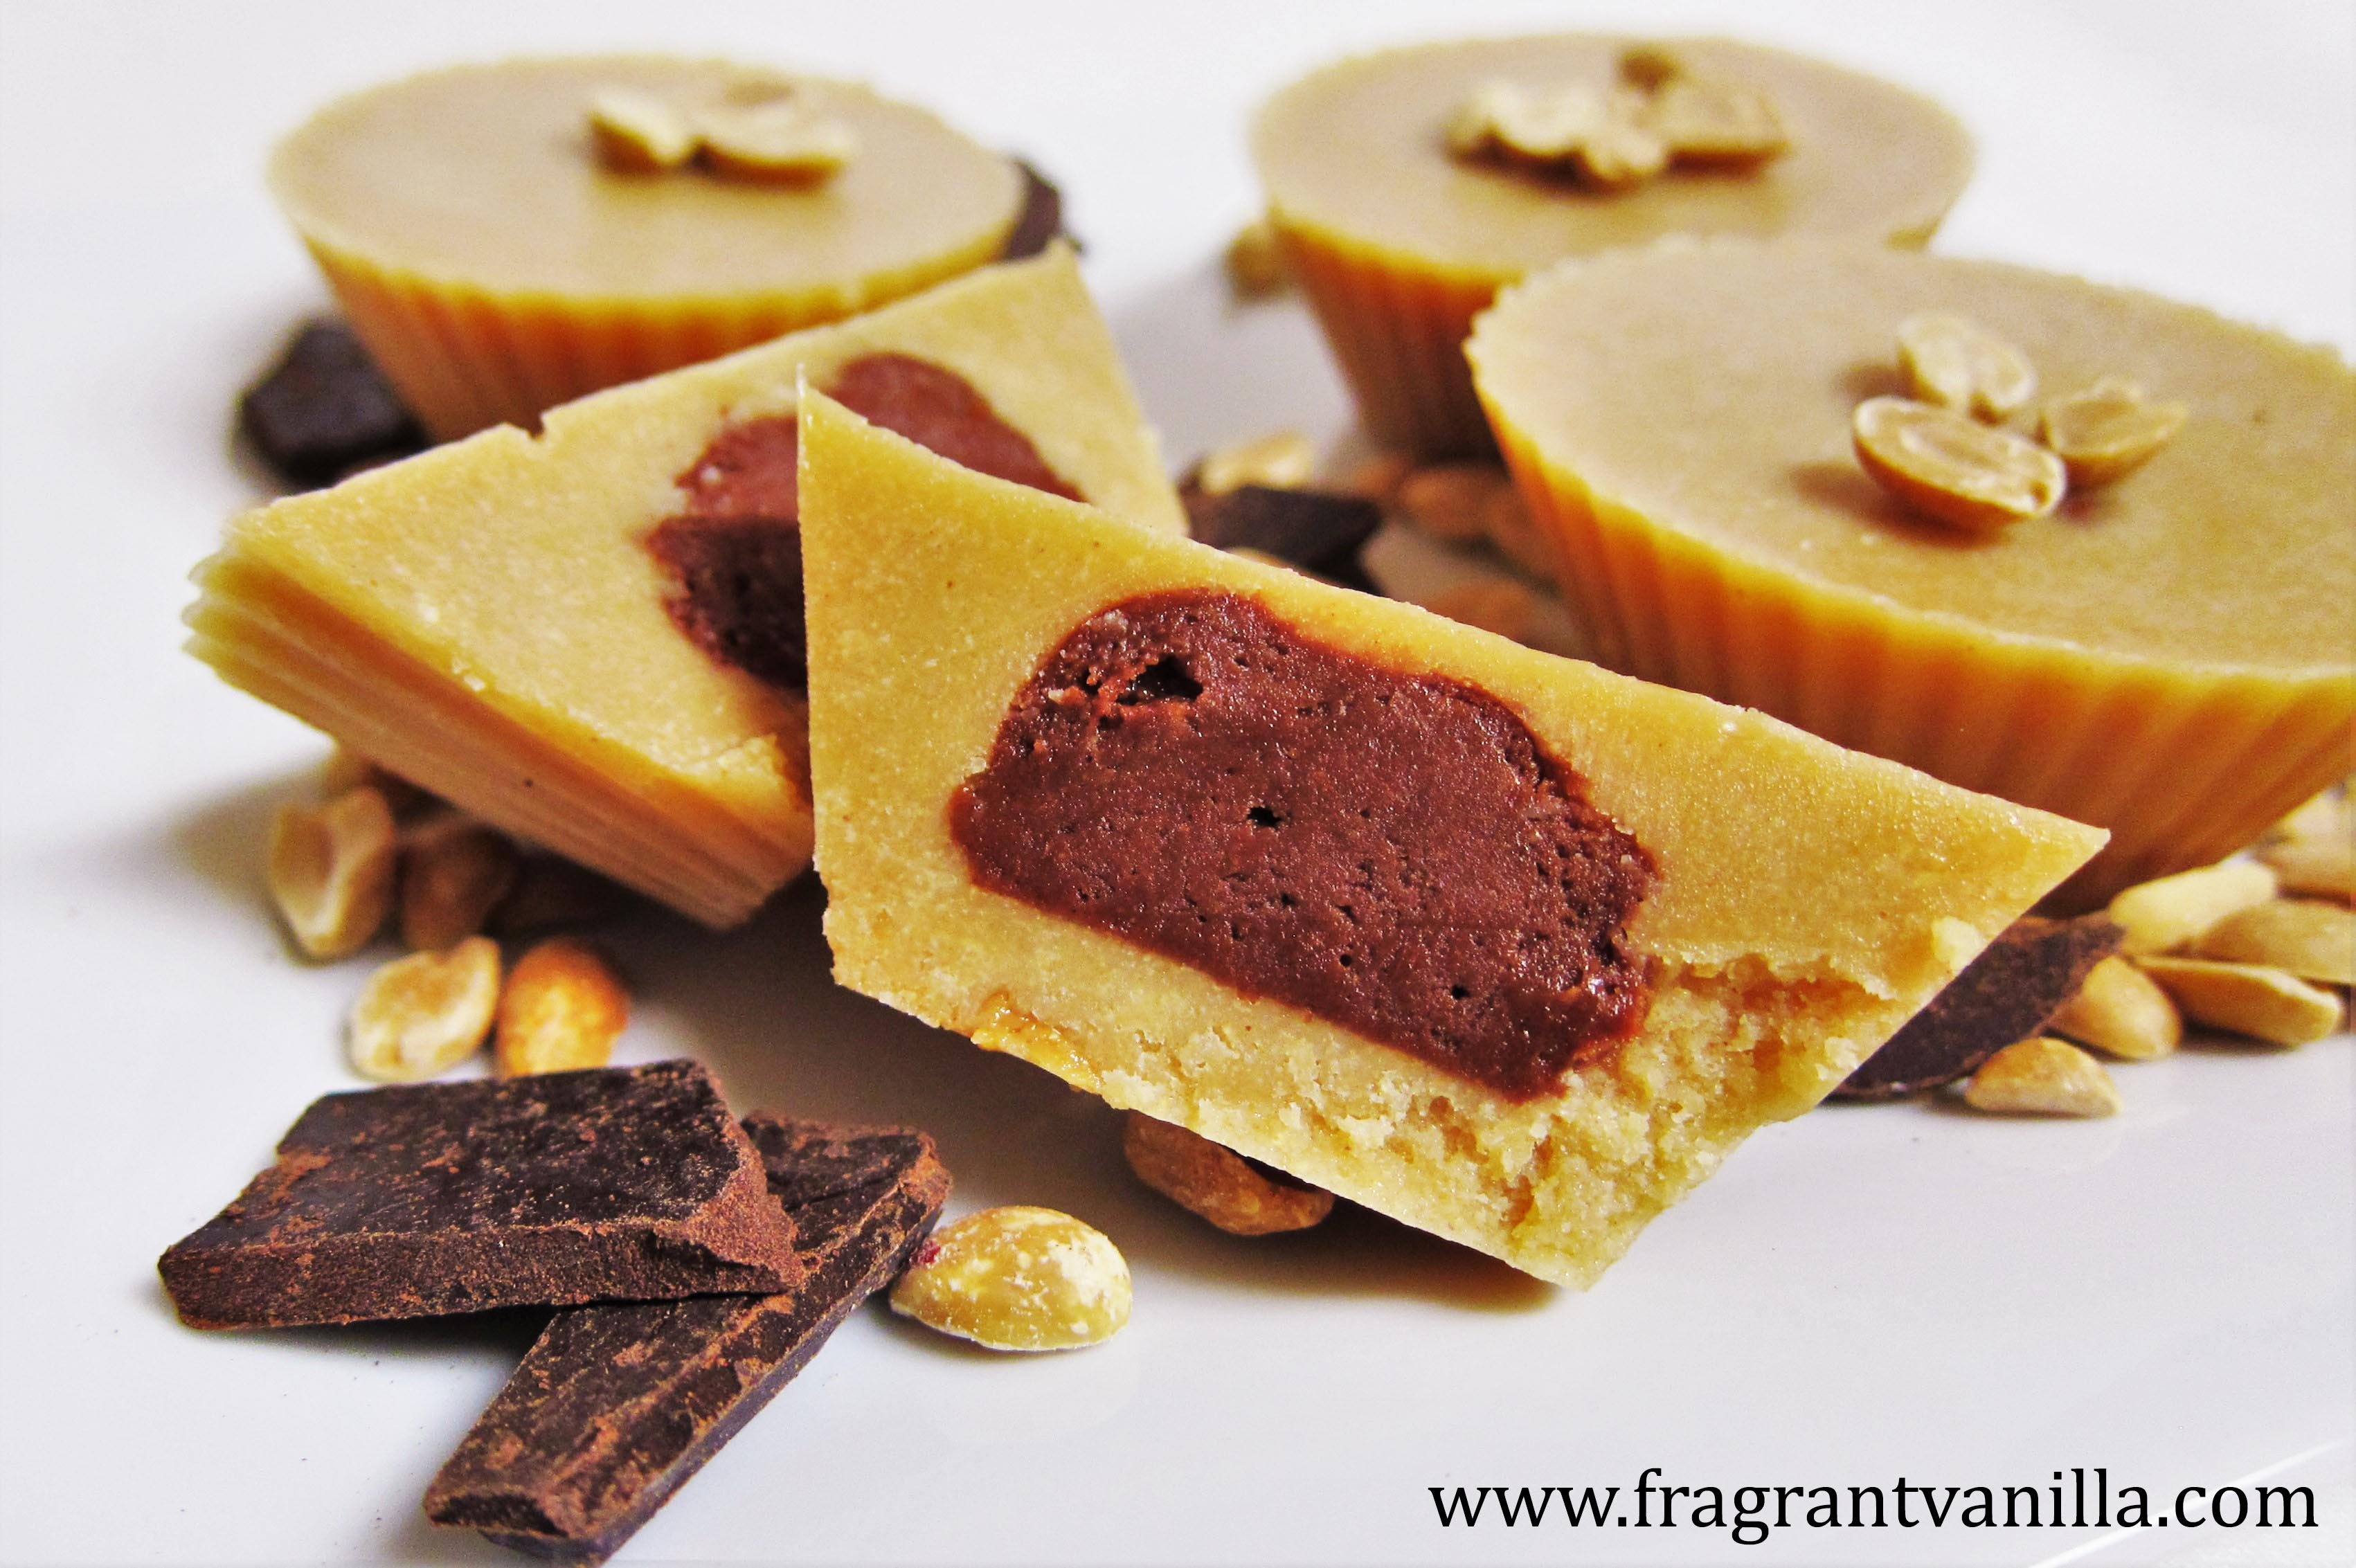 Vegan Inside Out Peanut Butter Cups